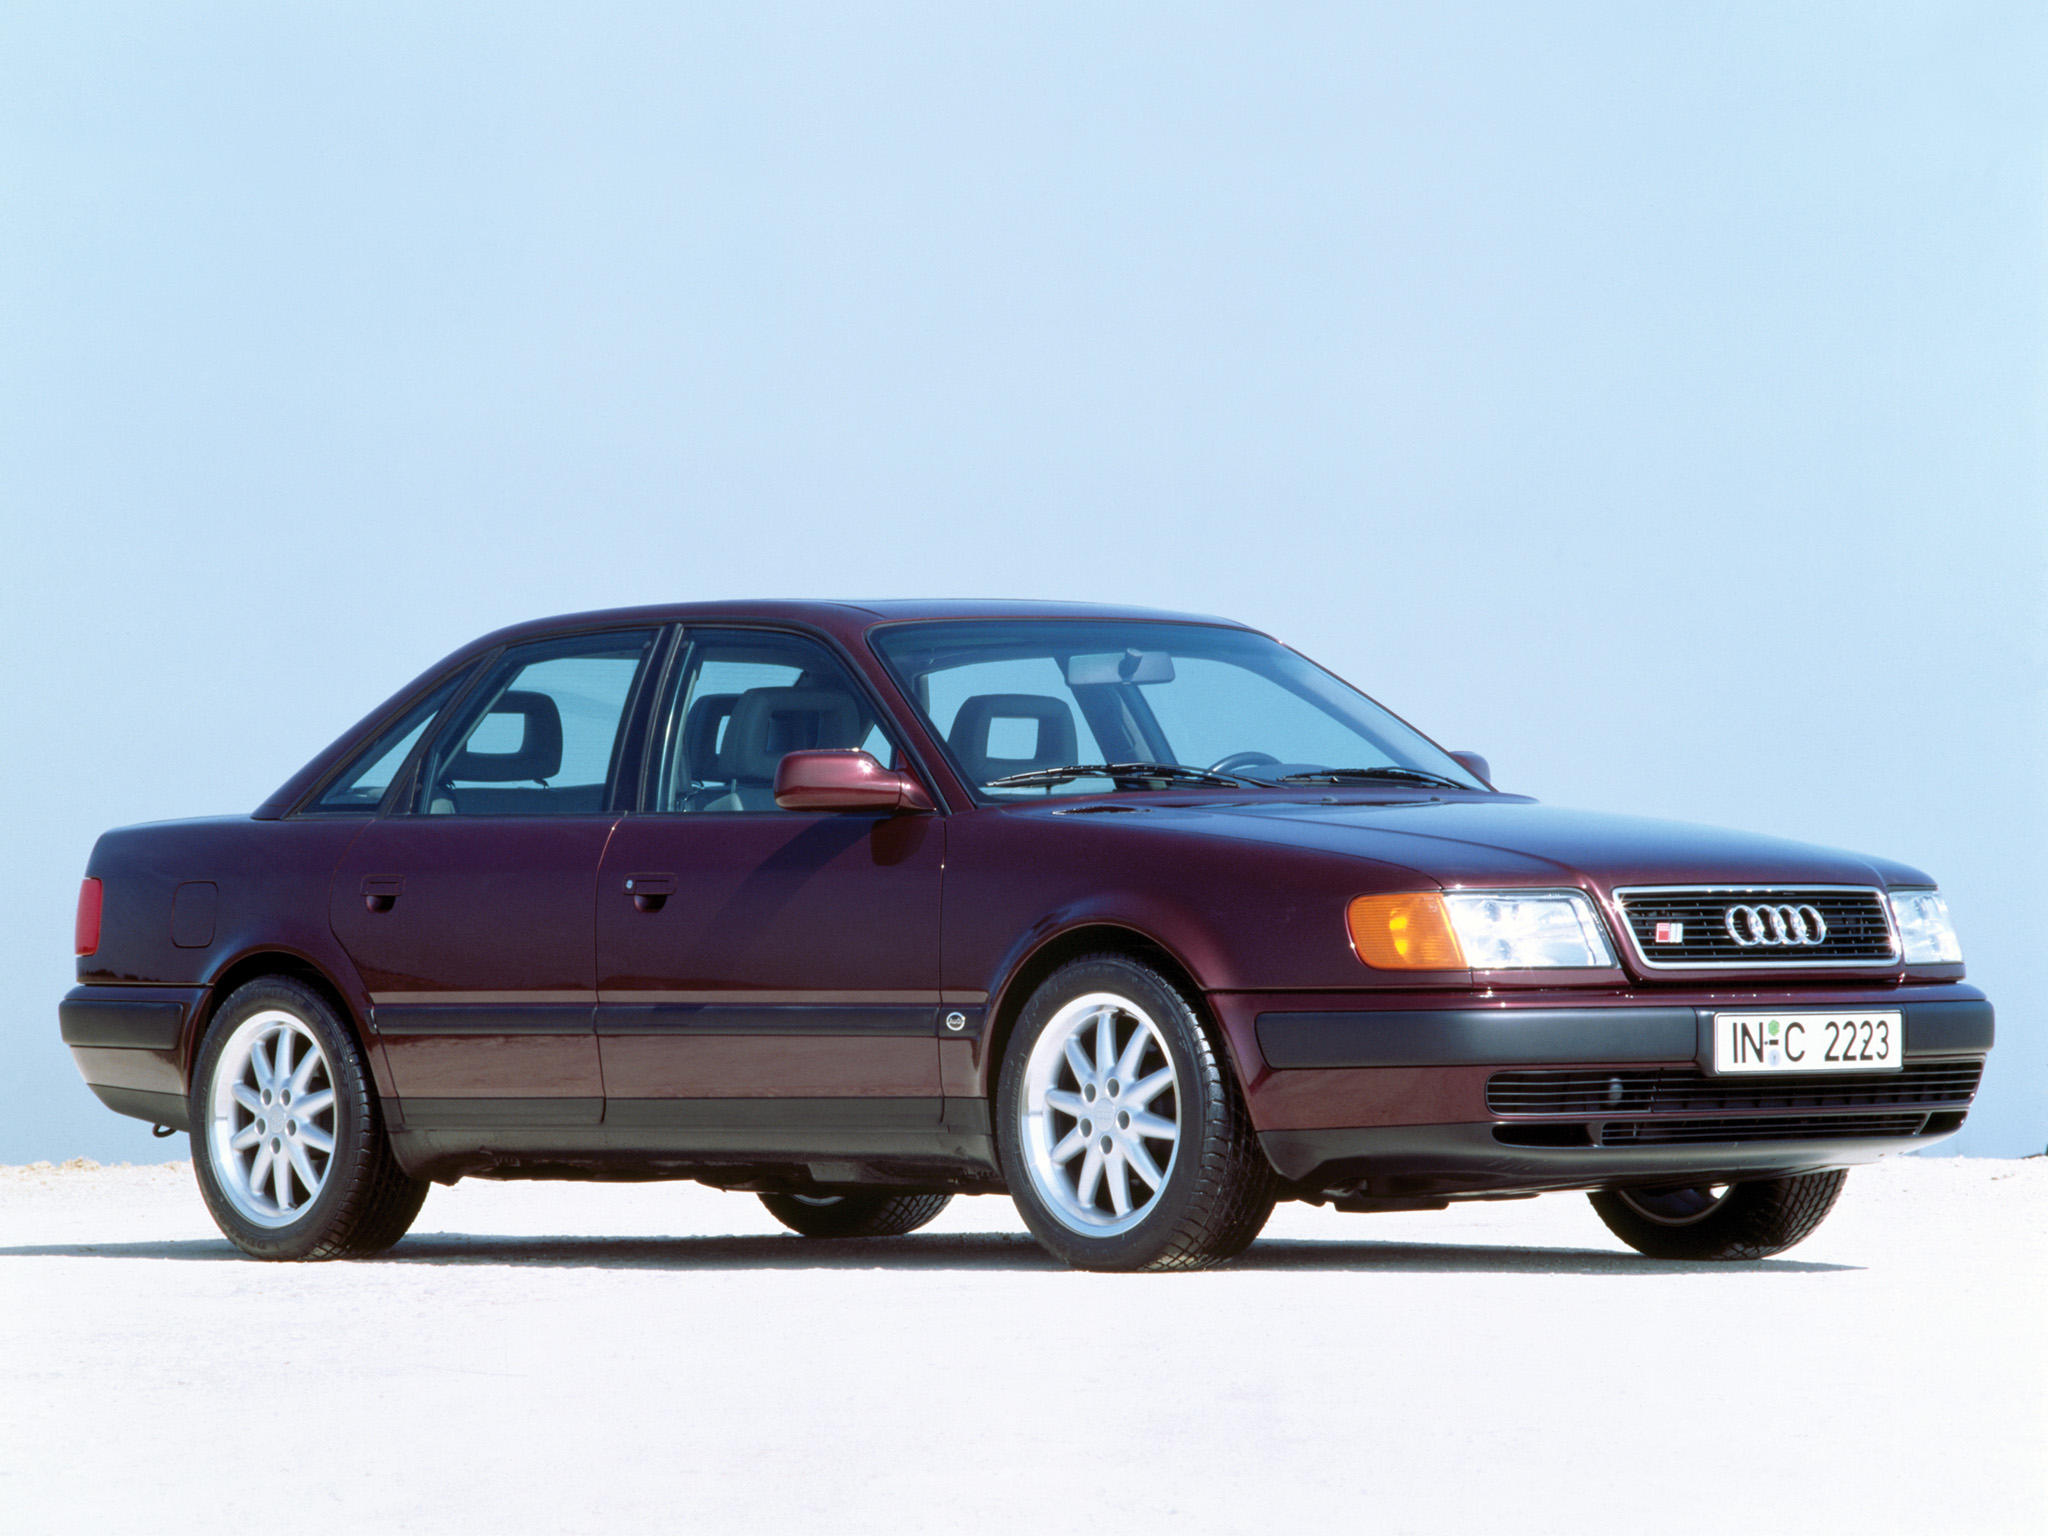 Audi s4 4ac4 22 s4 turbo quattro 230 hp car technical data general information sciox Images